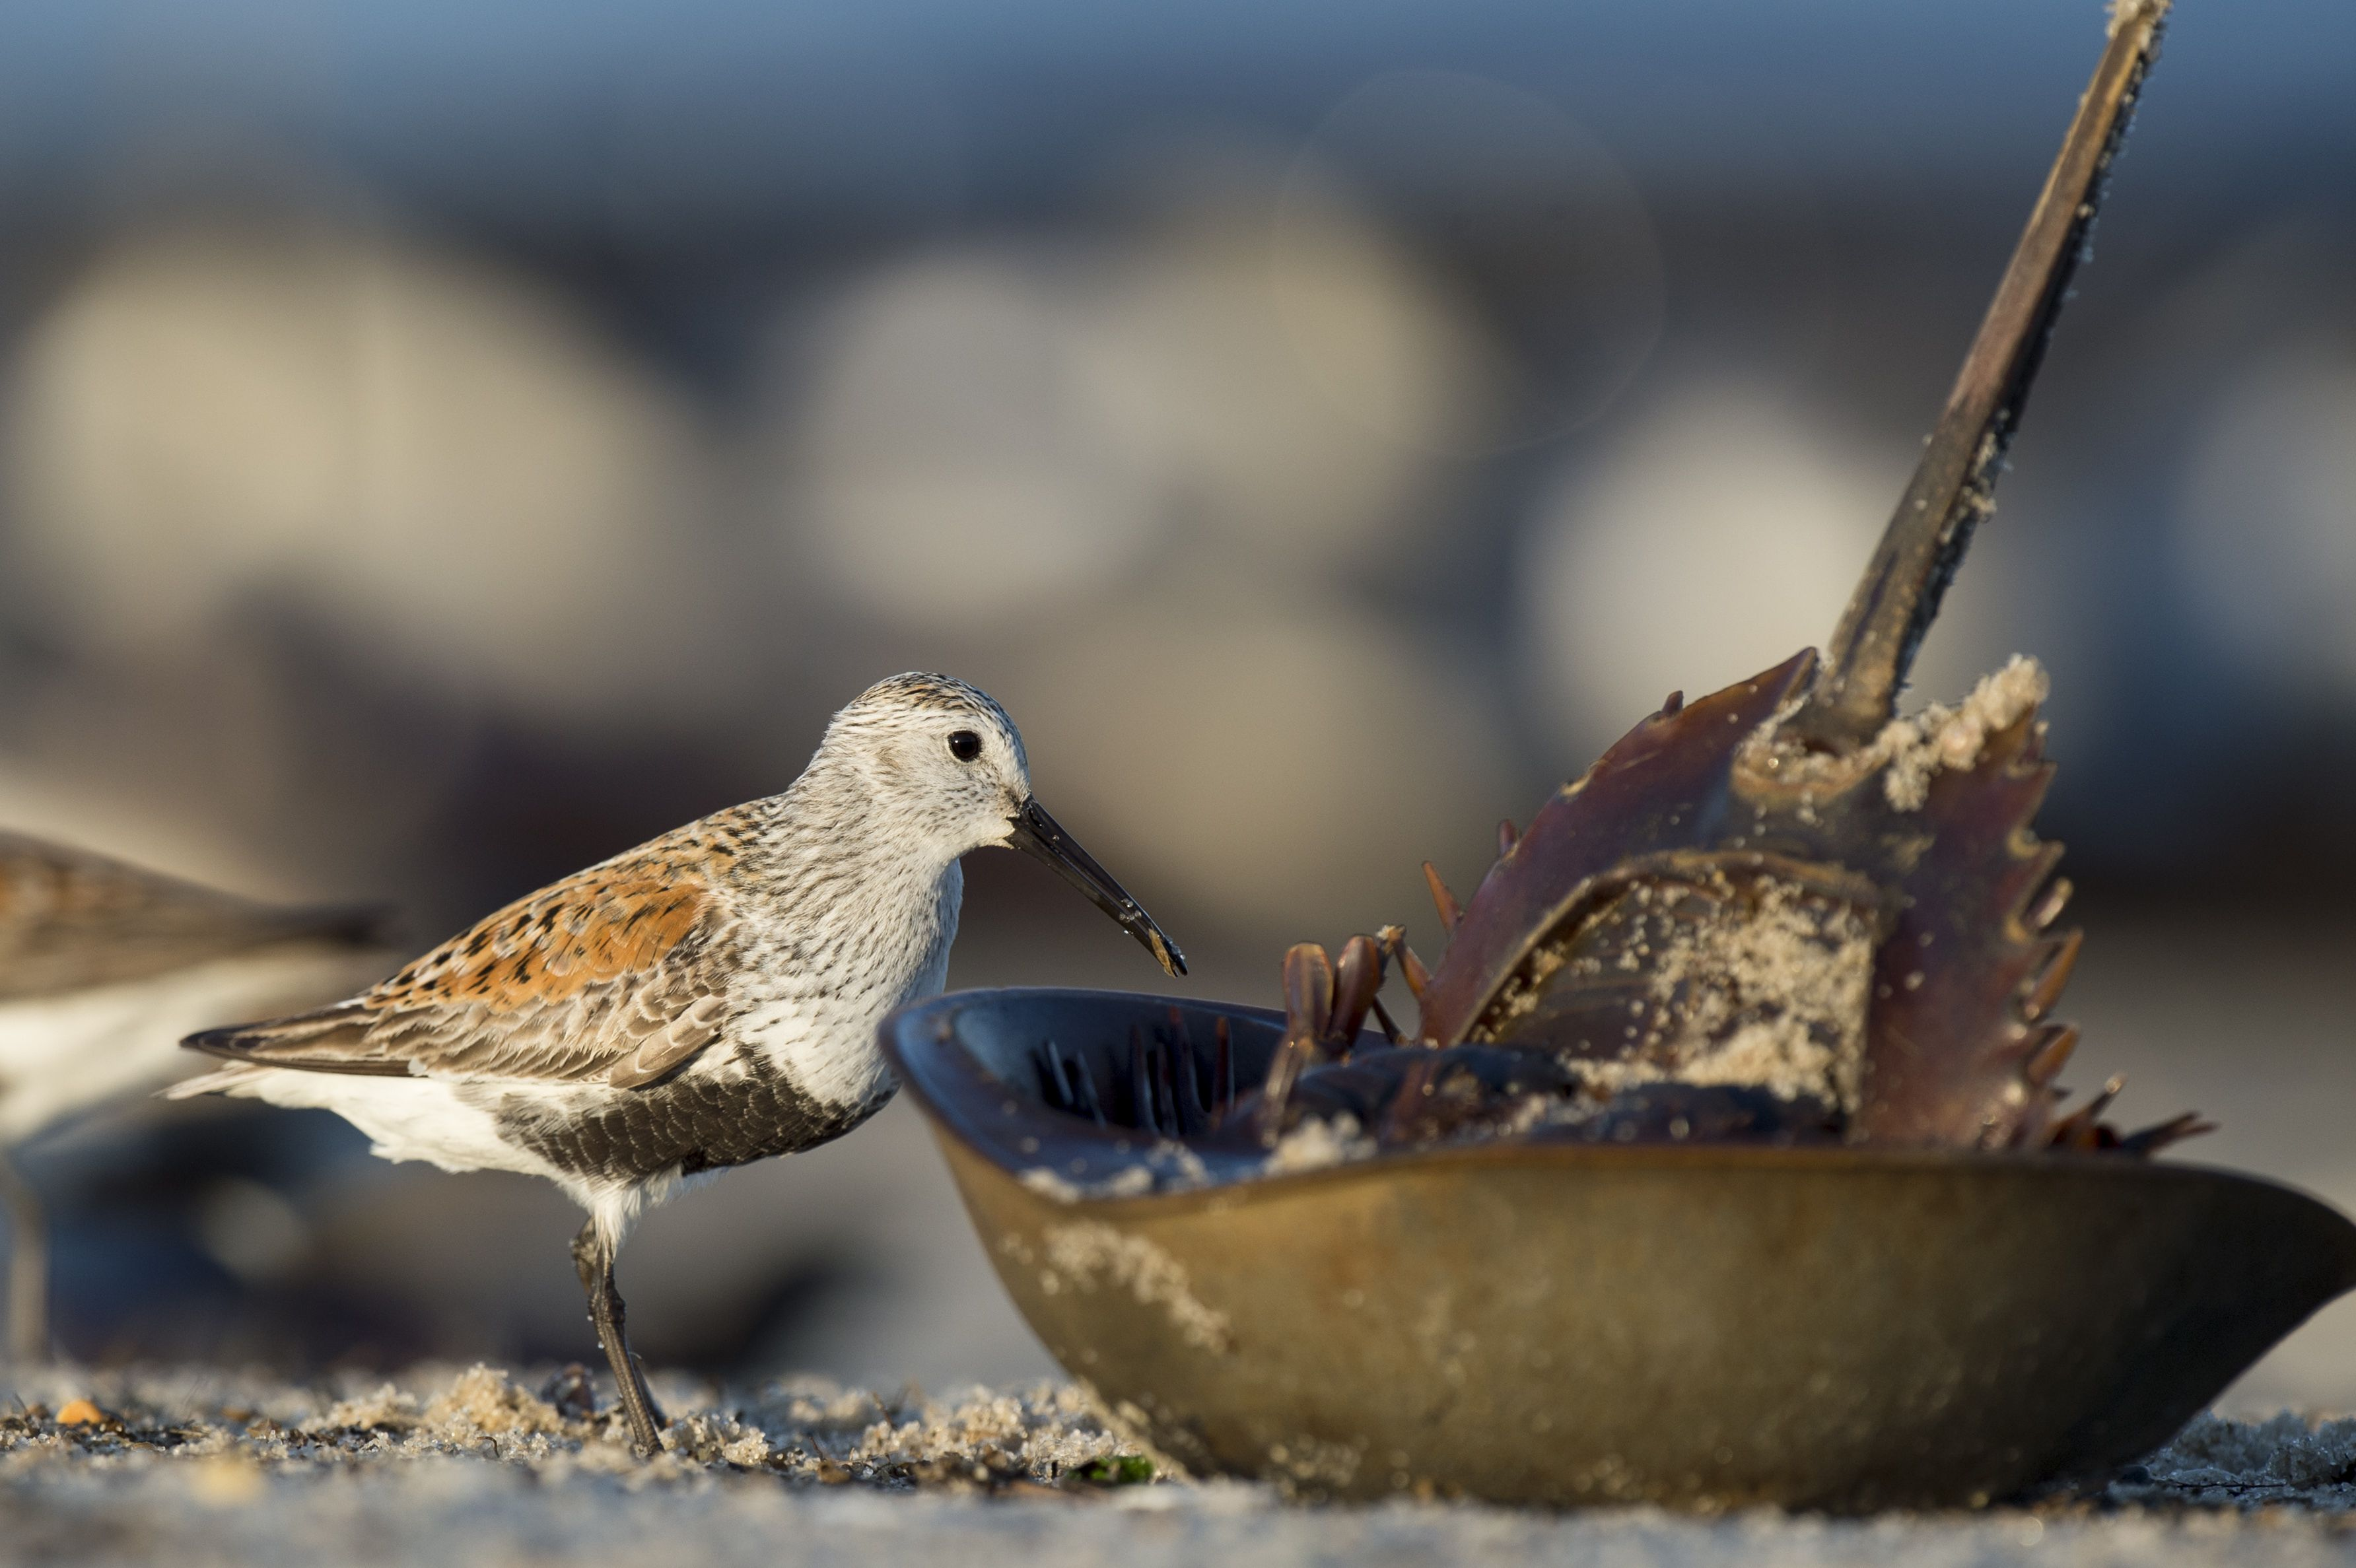 A dunlin stands next to an overturned horseshoe crab on the beach.